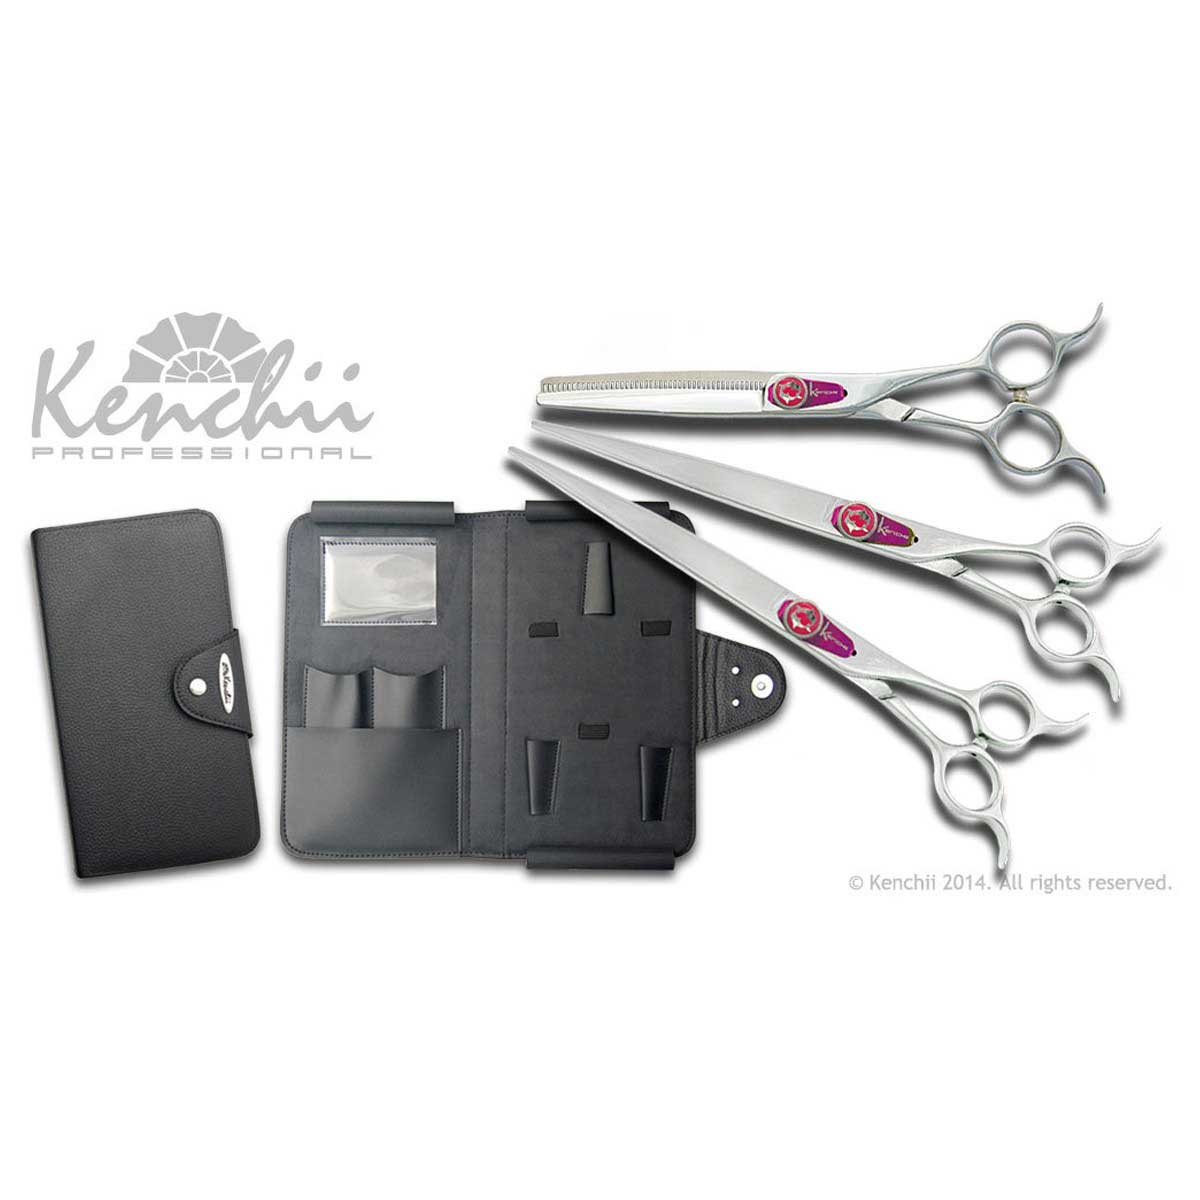 Kenchii Professional Flipper Shear Set includes Flipper 8 in Straight Shear, 8 in Curved Shear, 46 Tooth 6.5 in Thinner